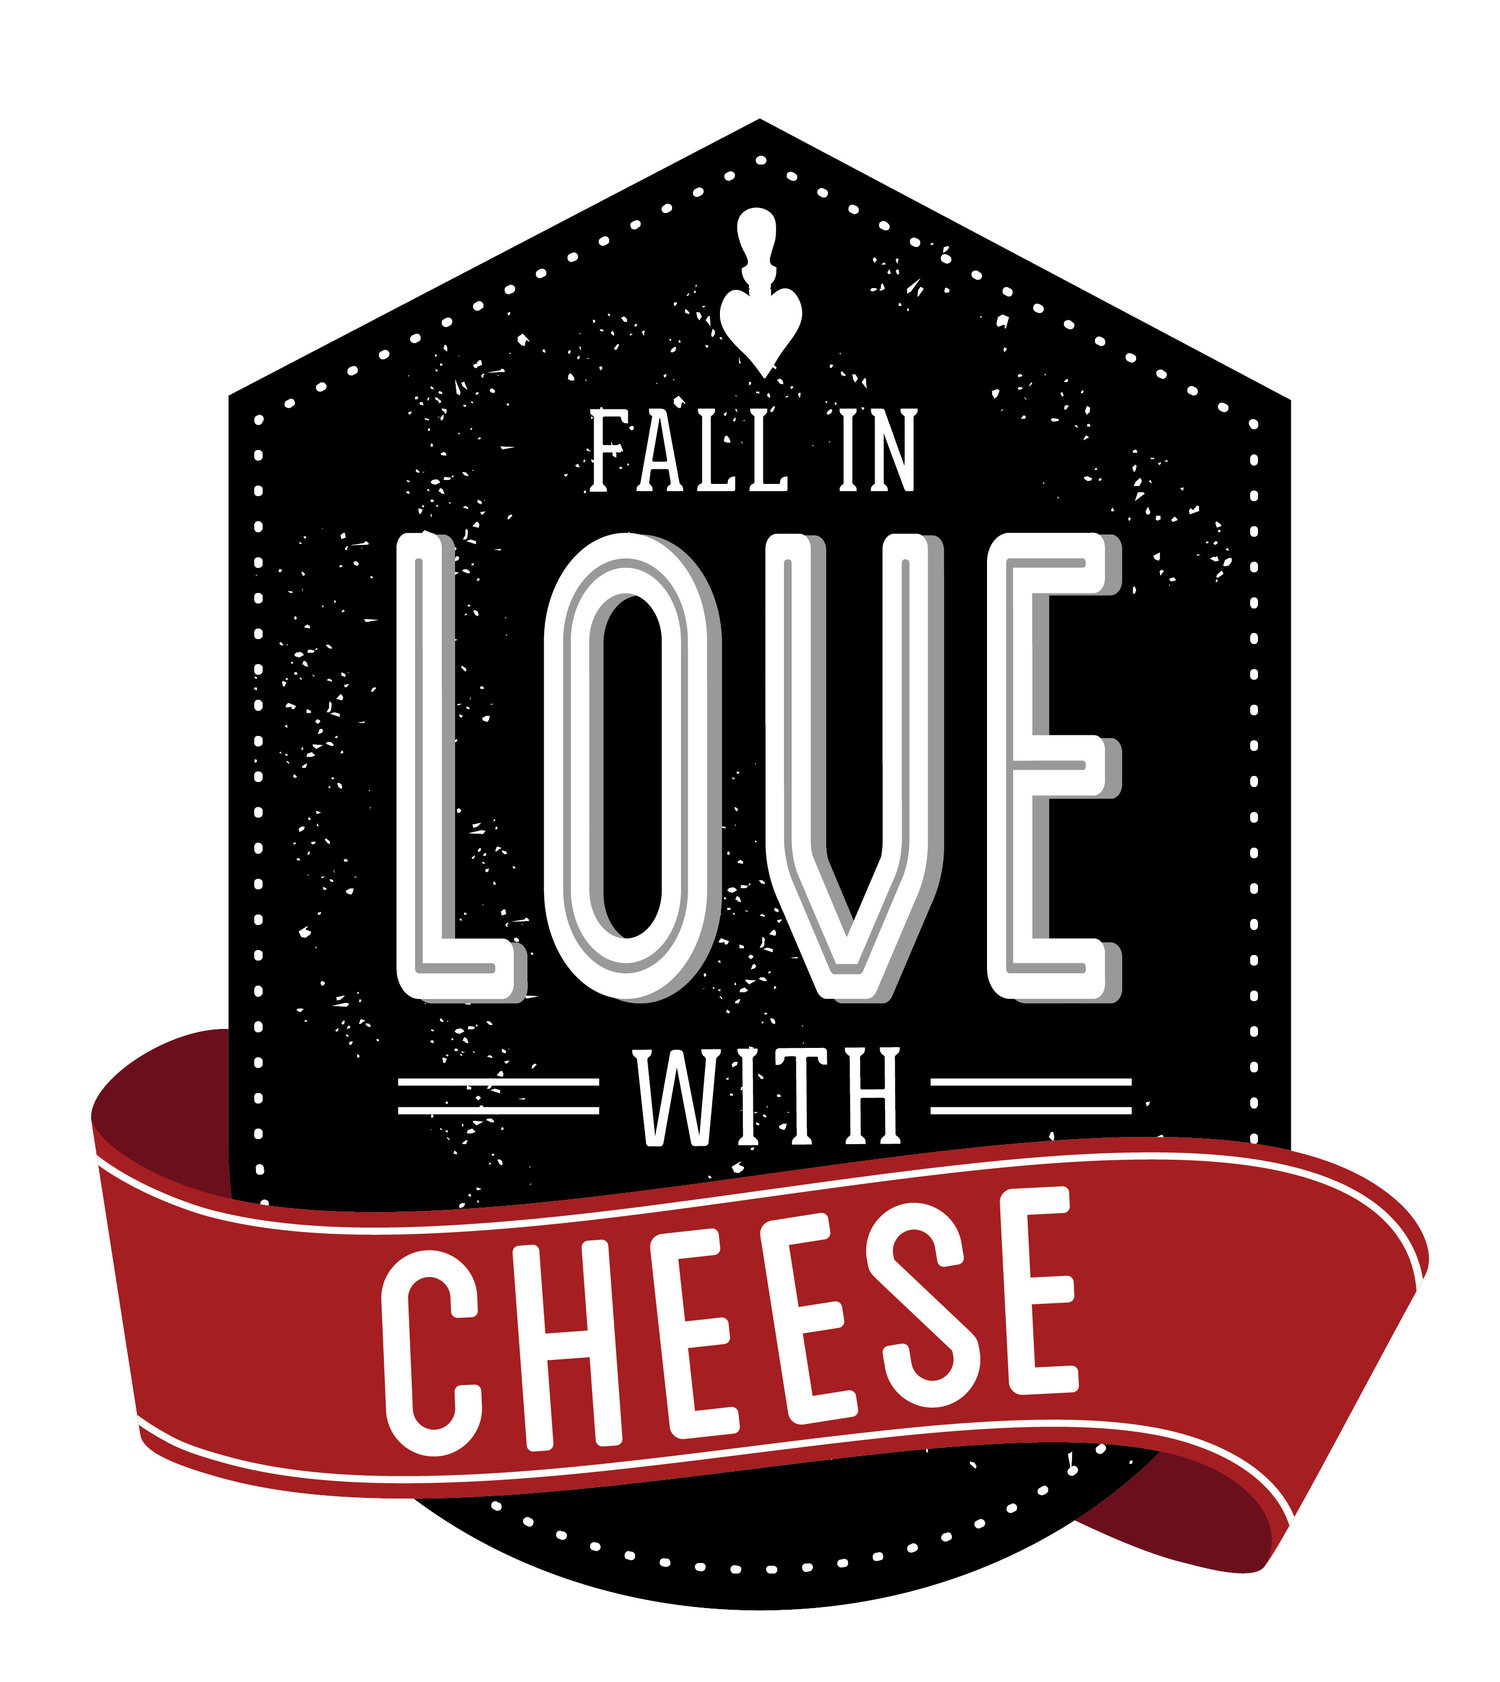 Fall In Love With Cheese